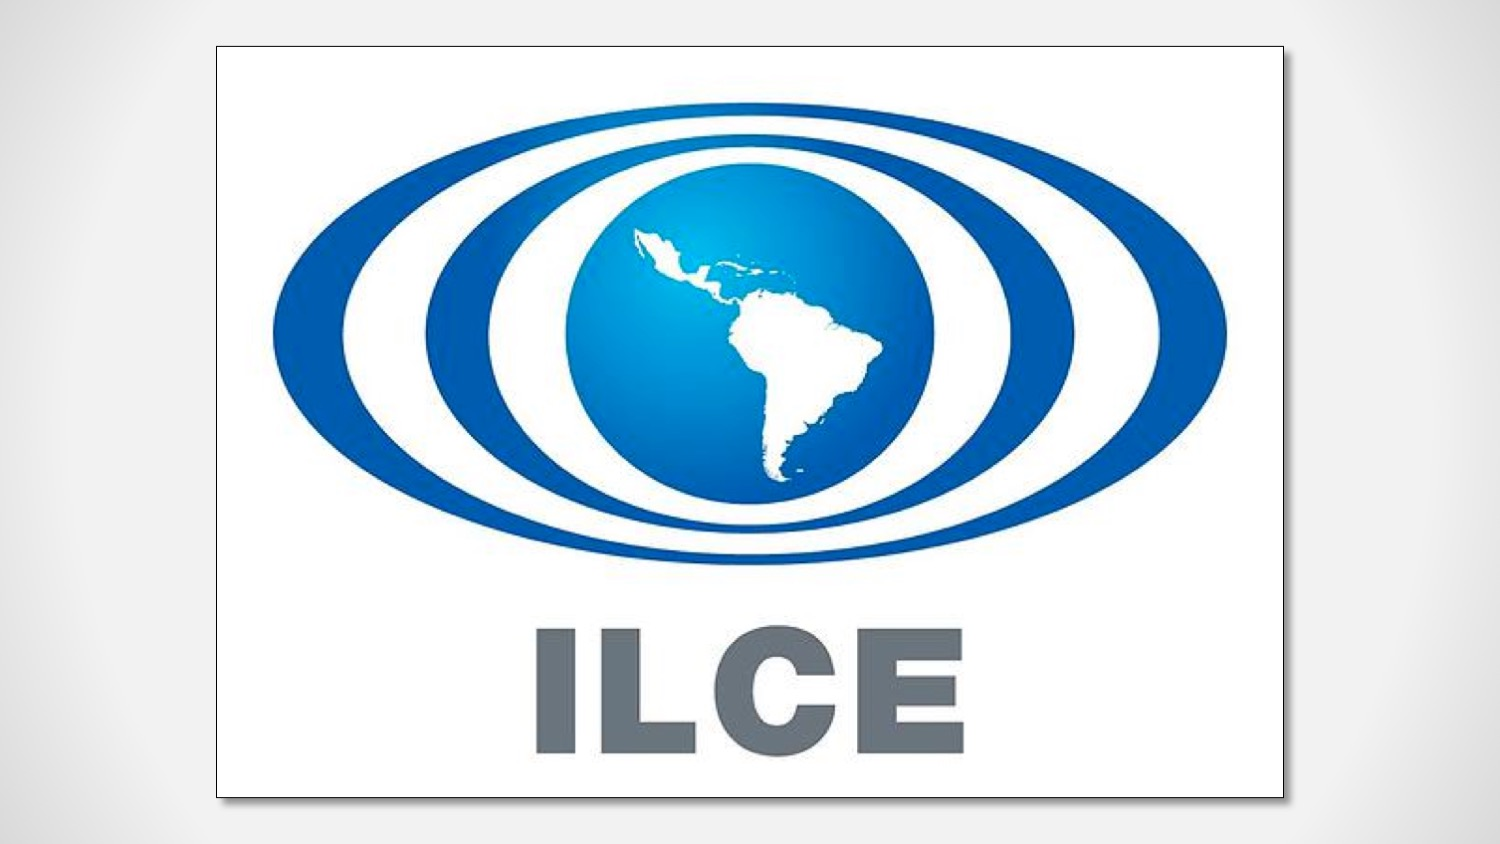 The Latin American Institute of Educational Communication (ILCE) logo